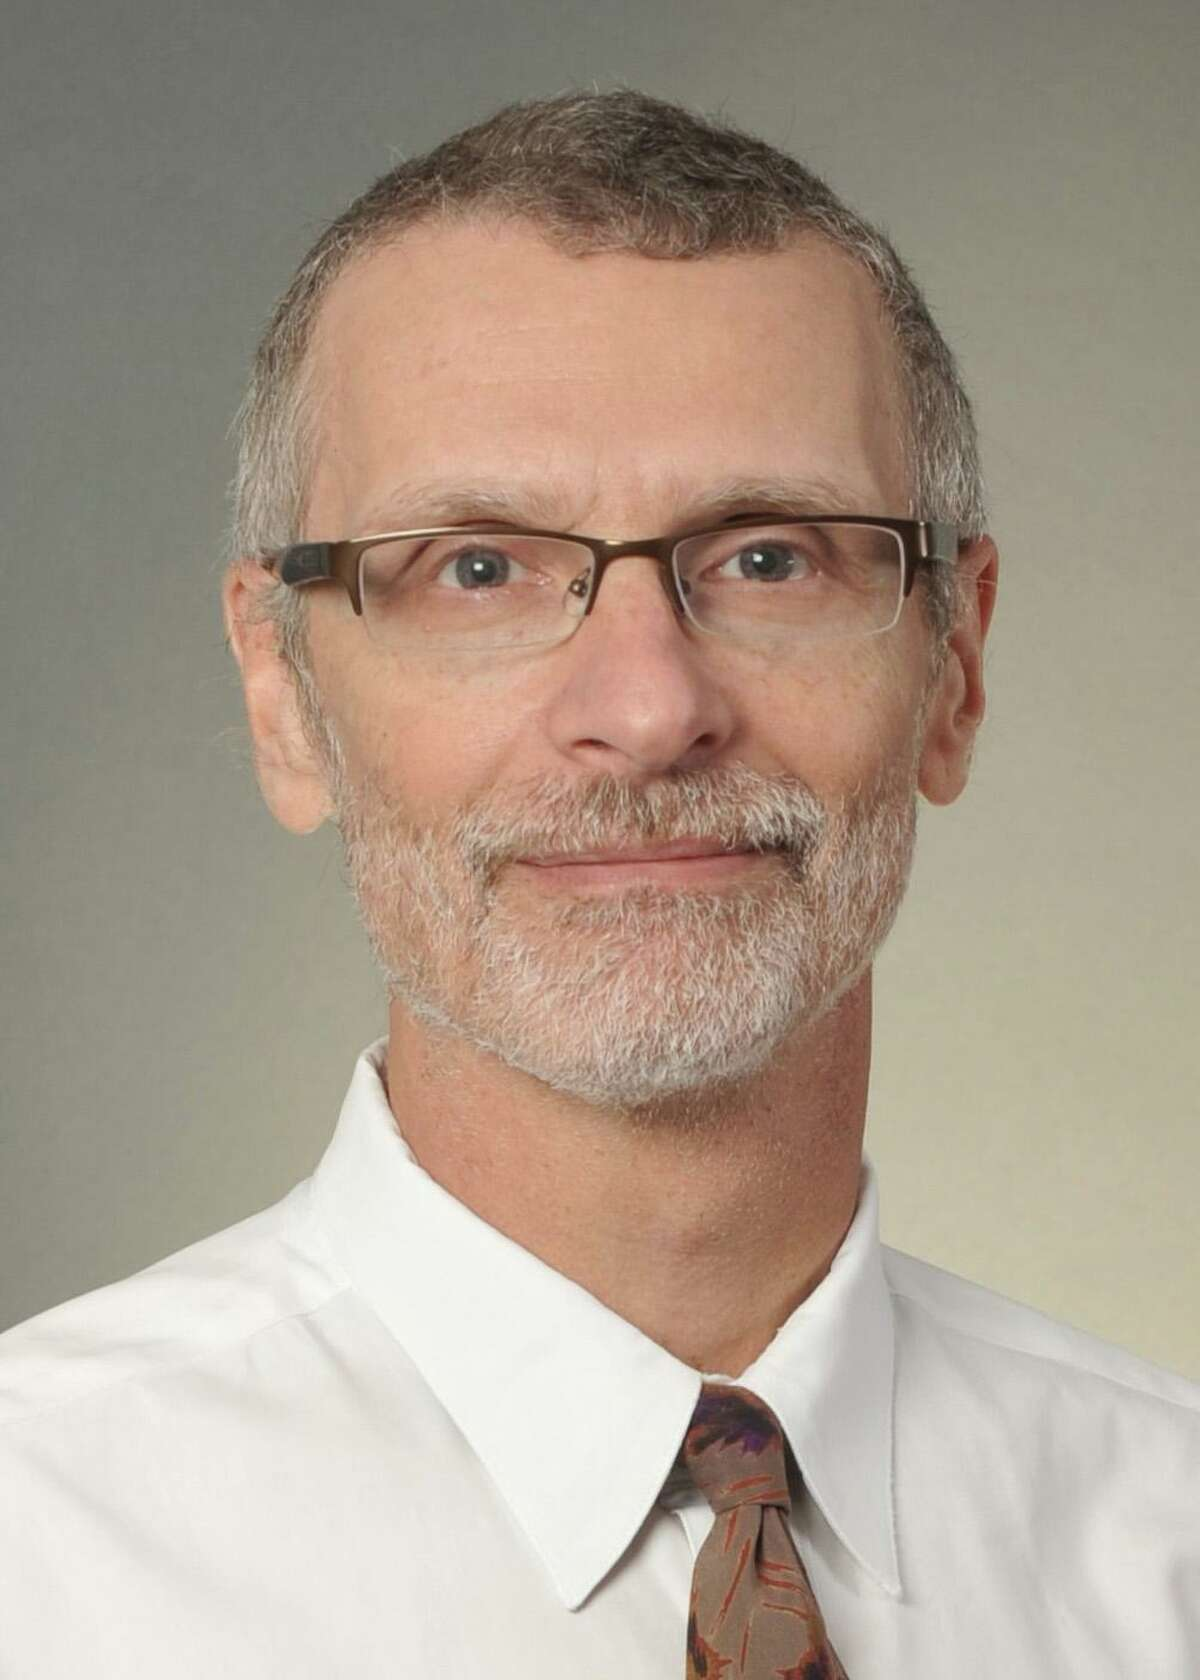 Dr. David Gius is leaving Northwestern University in Chicago to join the Mays Cancer Center in San Antonio, where he will serve as its new associate director for translational research.